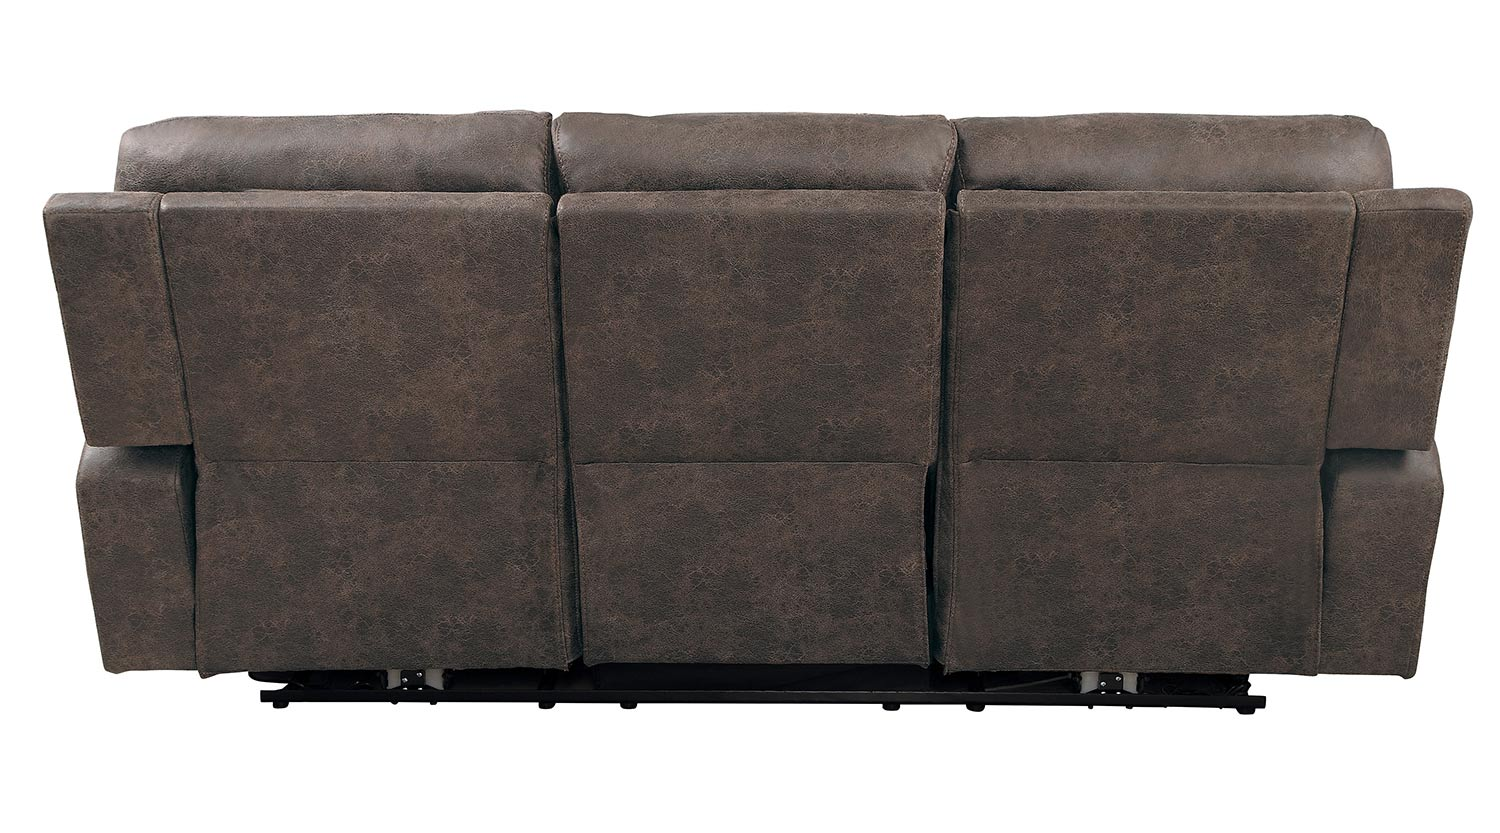 Homelegance Aggiano Power Double Reclining Sofa With Power Headrests - Dark Brown